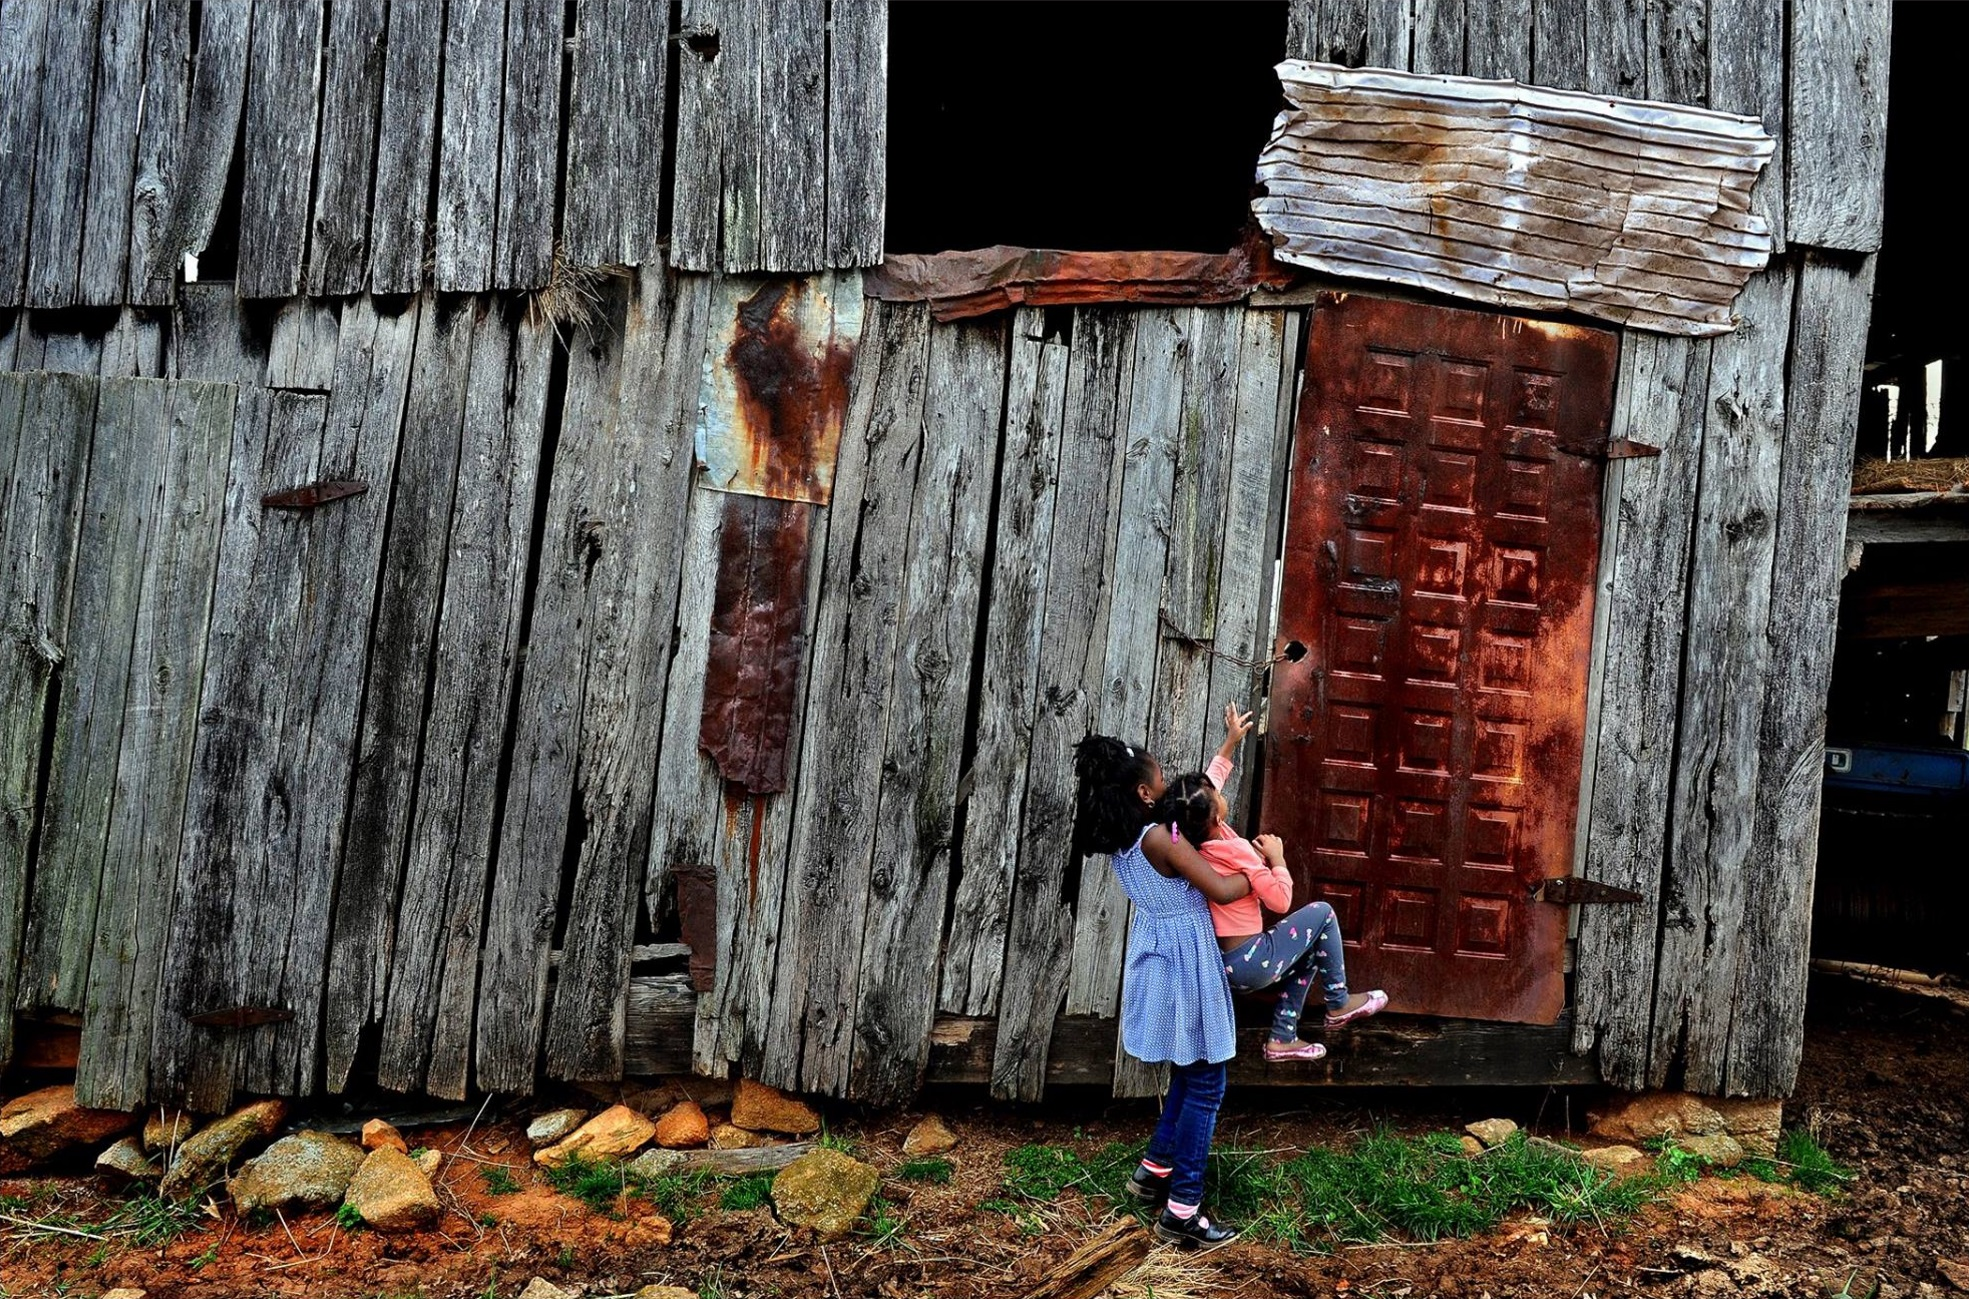 A curious Juliet Pace (age 4) and her cousin Campbell (age 7) got quite a history lesson on Monday as they visited a nearly forgotten slave cemetery where some of their relatives are buried. They also explored a restored slave shack on the grounds of Sweet Briar College (in Amherst, Va.) and this great old barn that belongs to their 75-year-old cousin Jasper. The farm has been in the family since just after the civil war. © 2015 Michael S. Williamson/The Washington Post